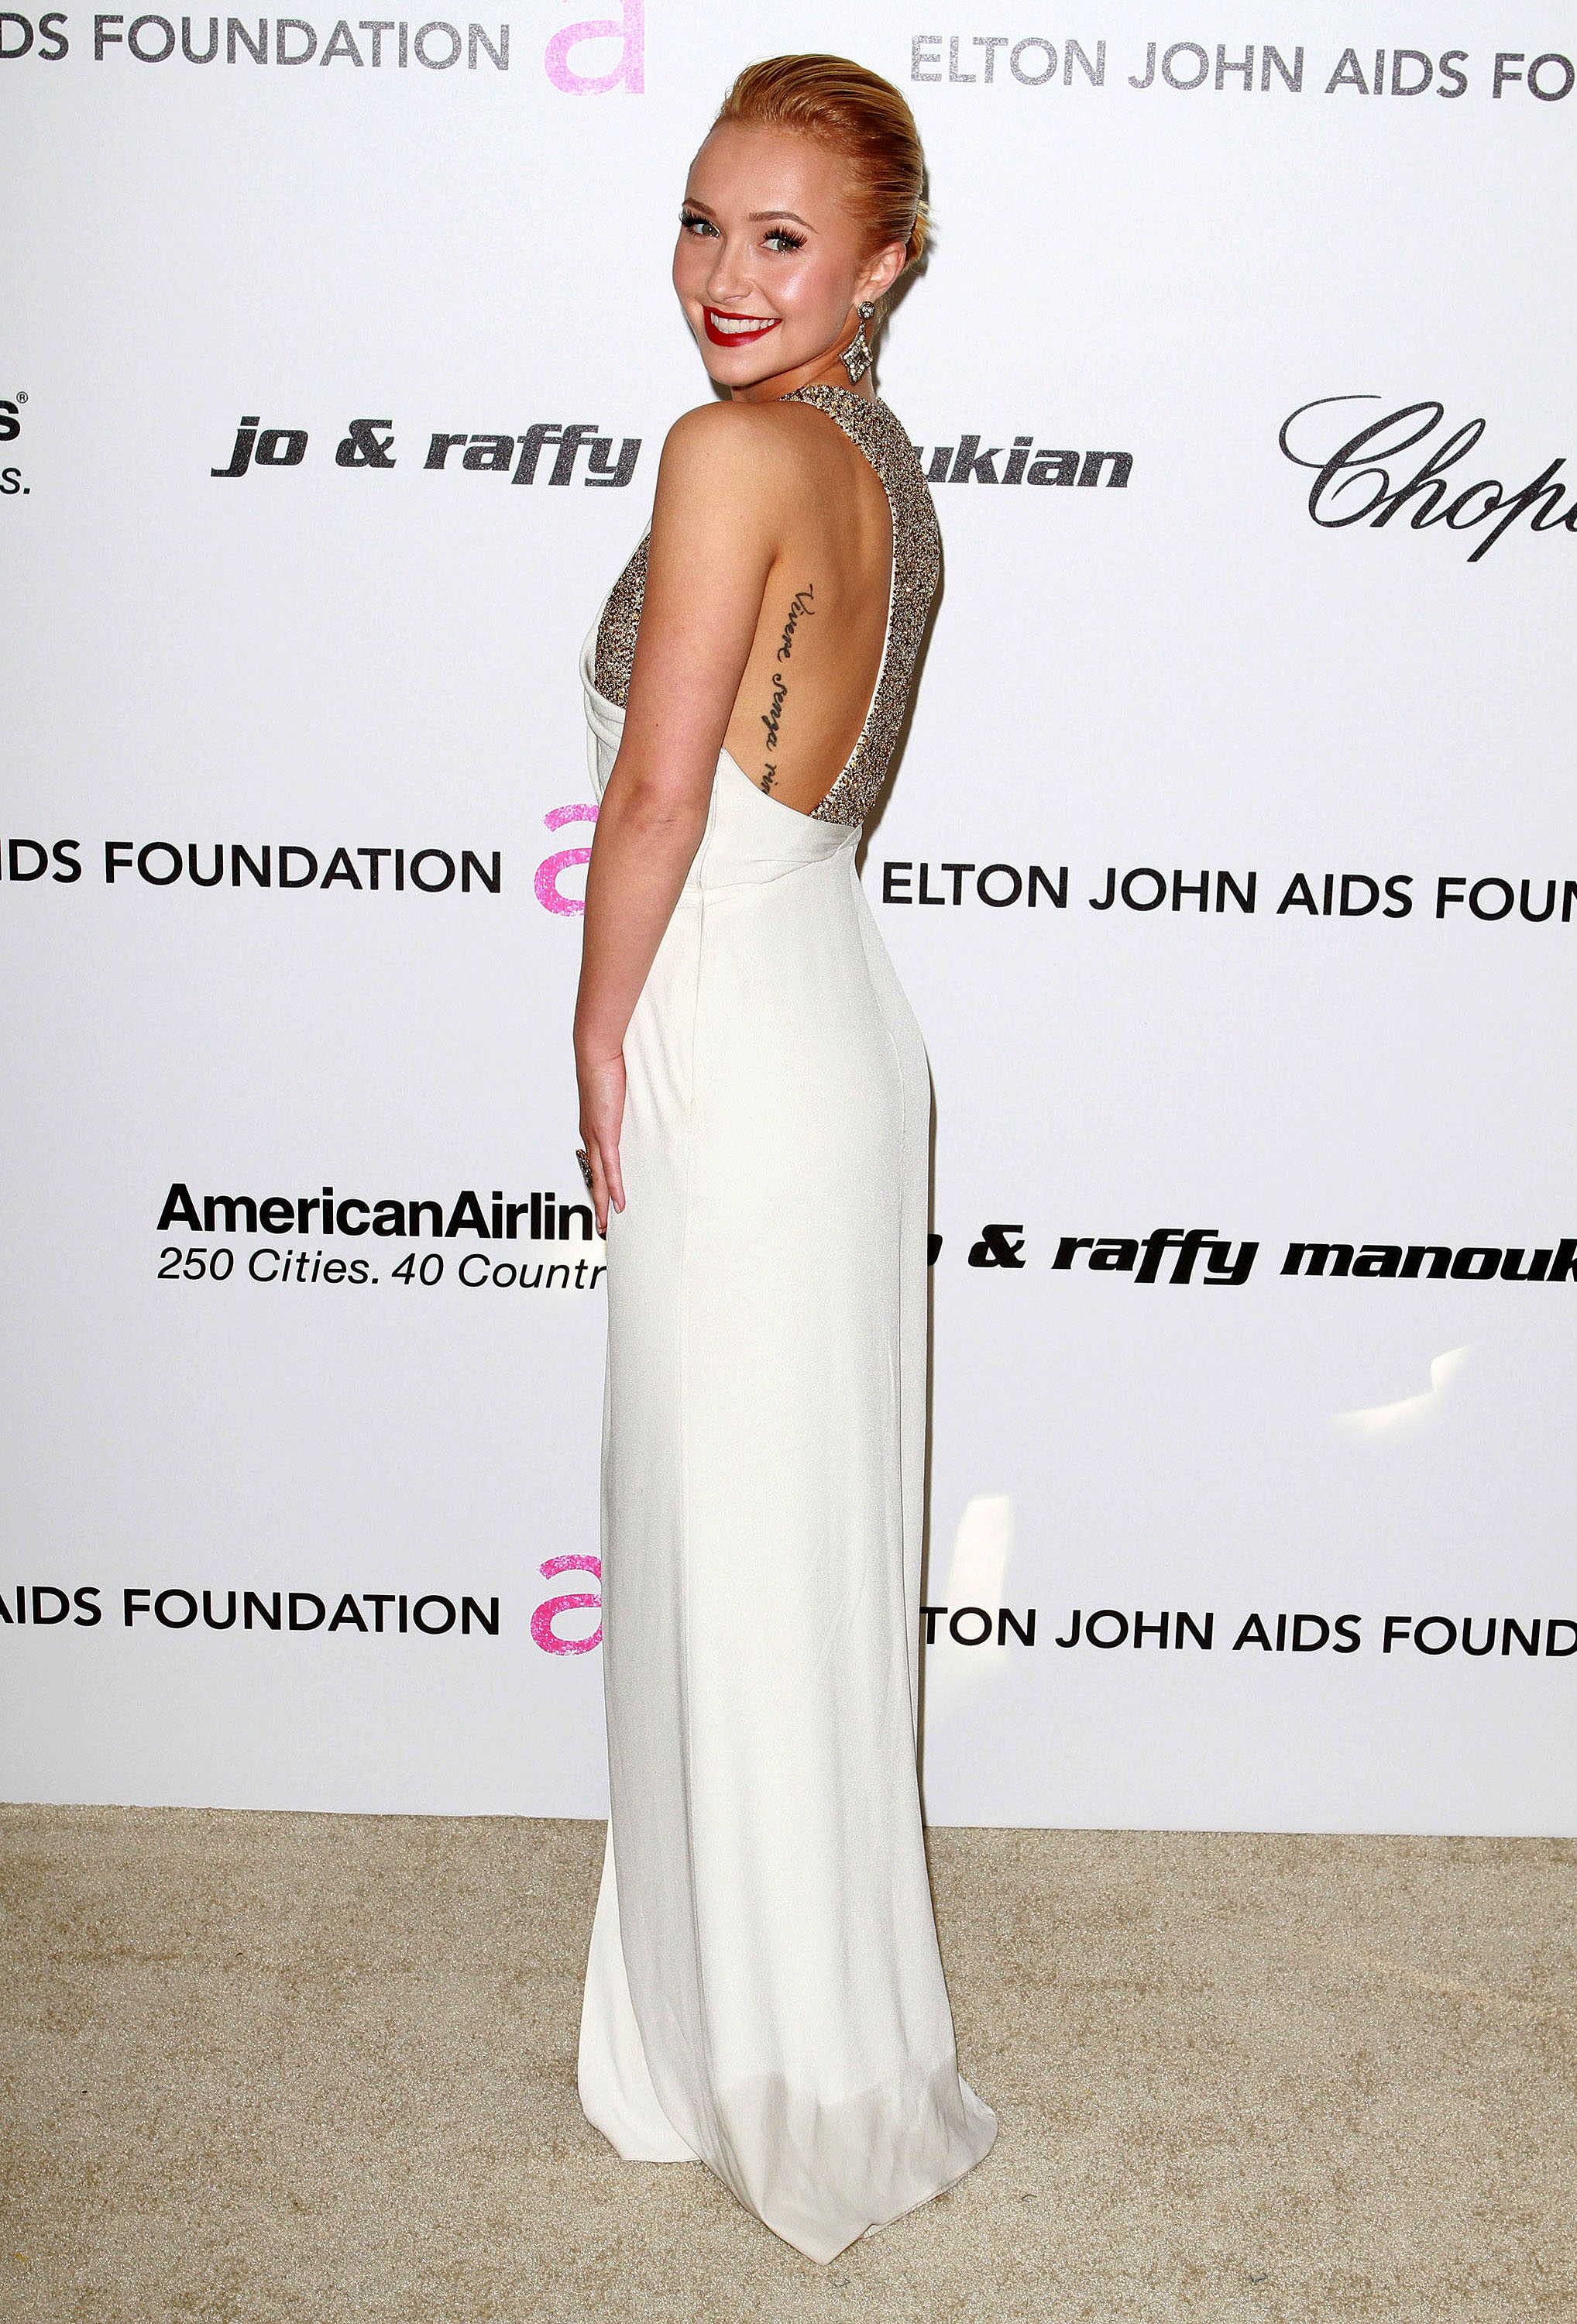 890484231_Hayden_Panettiere_19th_Annual_Elton_John_AIDS_Foundation8_122_338lo.jpg